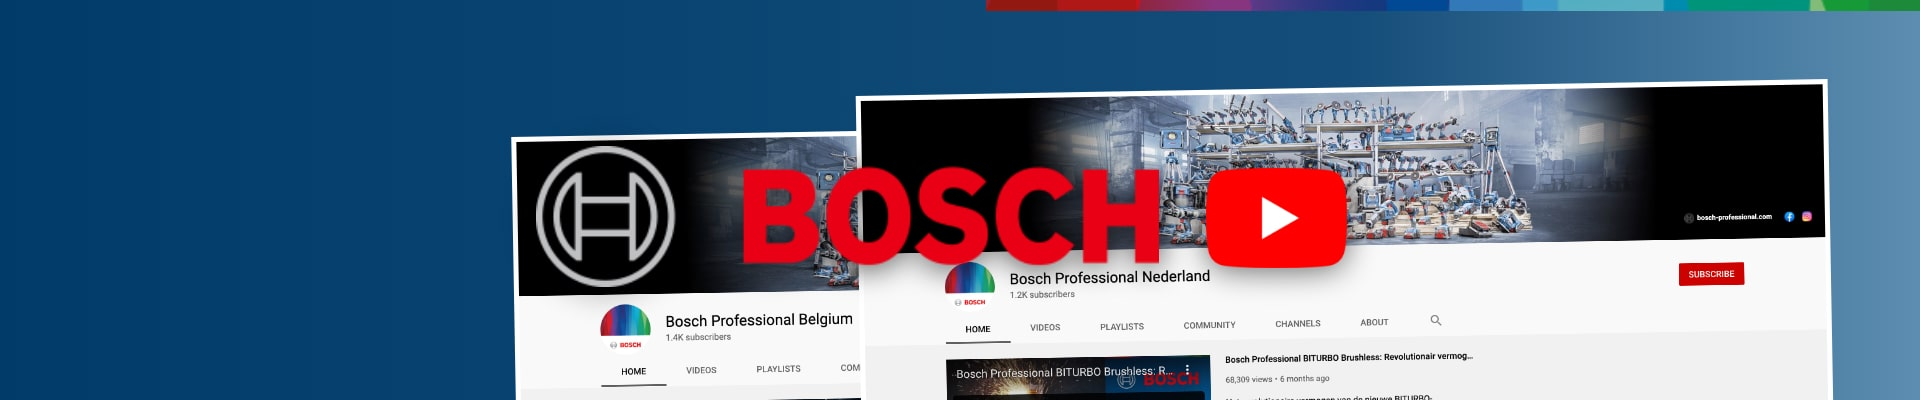 Bosch Professional Power Tools: videoproductie